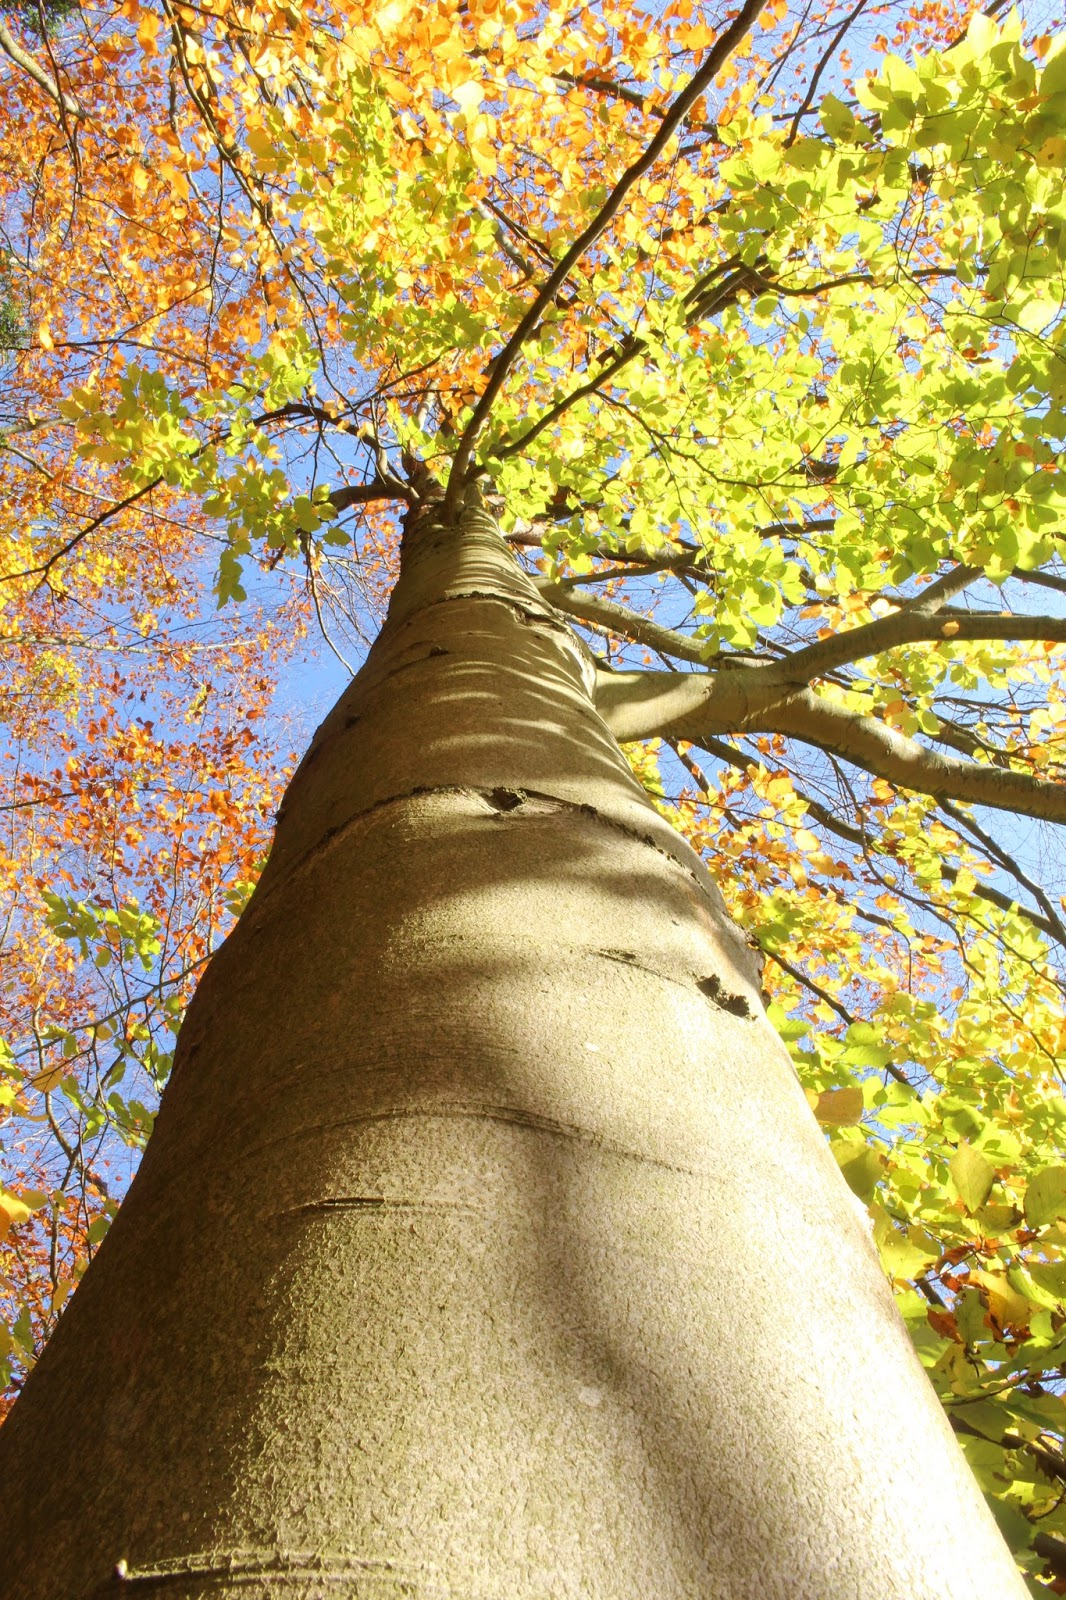 tree autumn different angles perspective photography